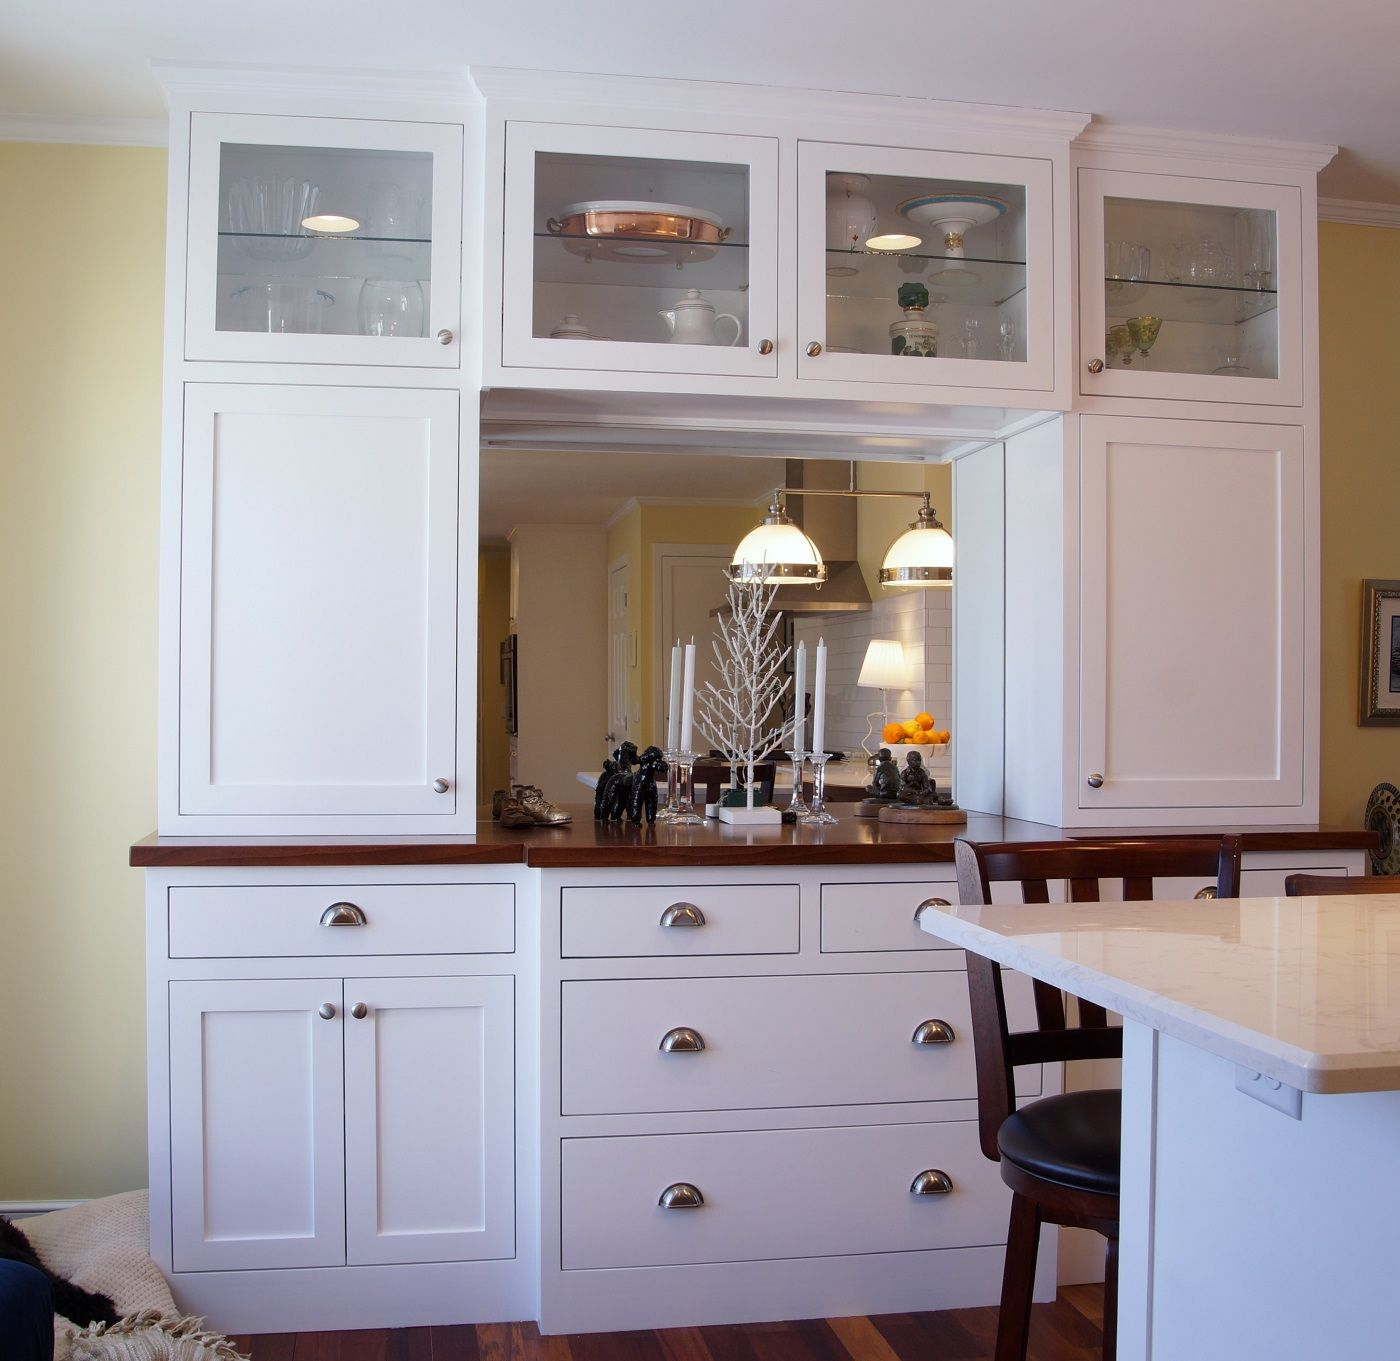 Create A Clutter Free Kitchen With Double Stacked Cabinets Clutter Free Kitchen Kitchen Cabinet Trends Kitchen Cabinets